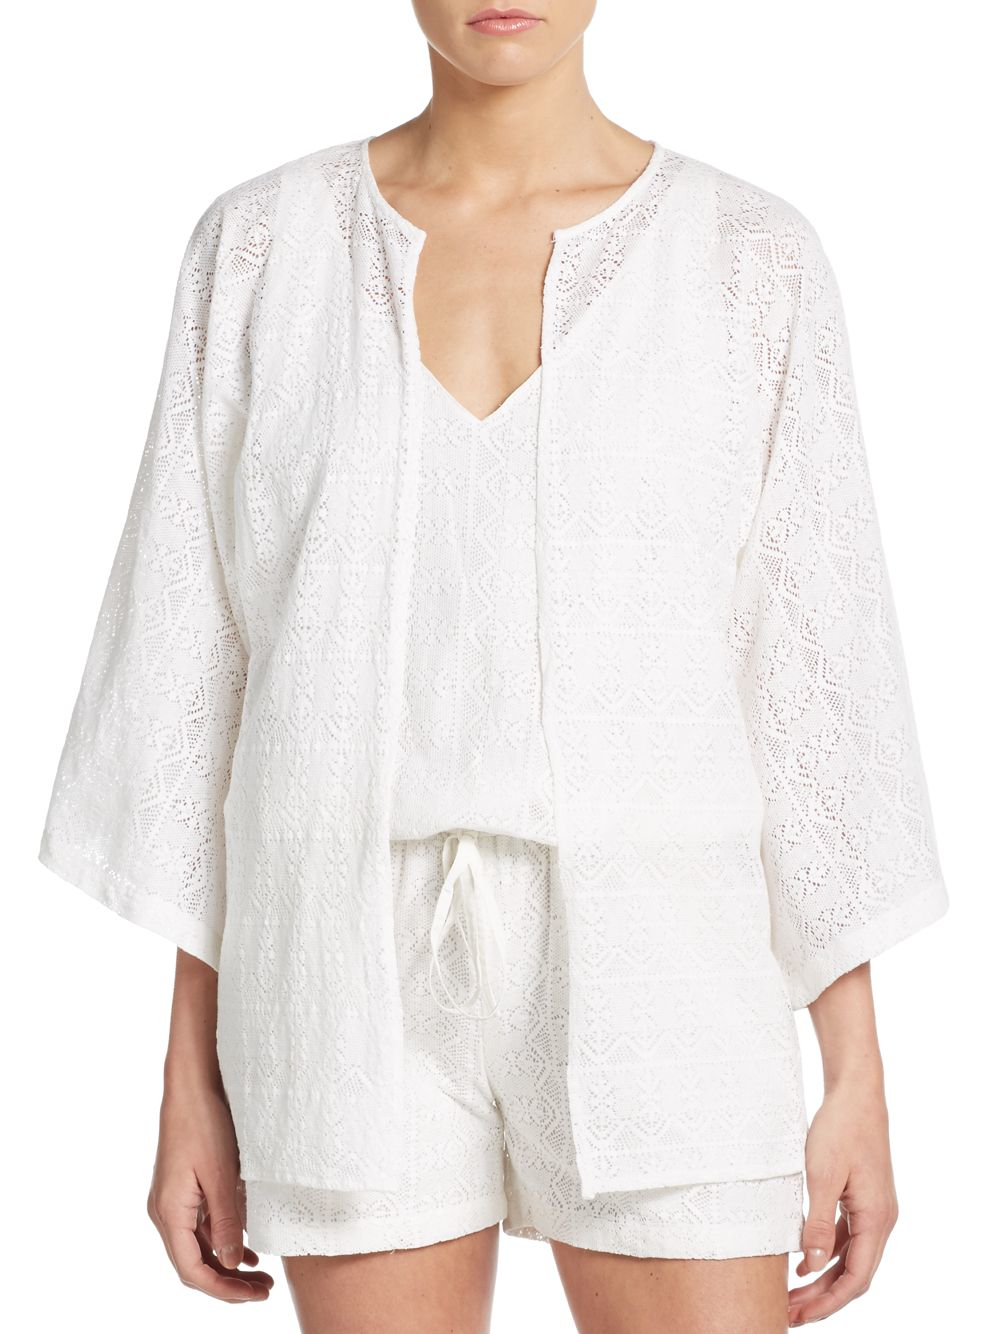 W118 by walter baker Holly Cotton Kimono Cardigan in White | Lyst